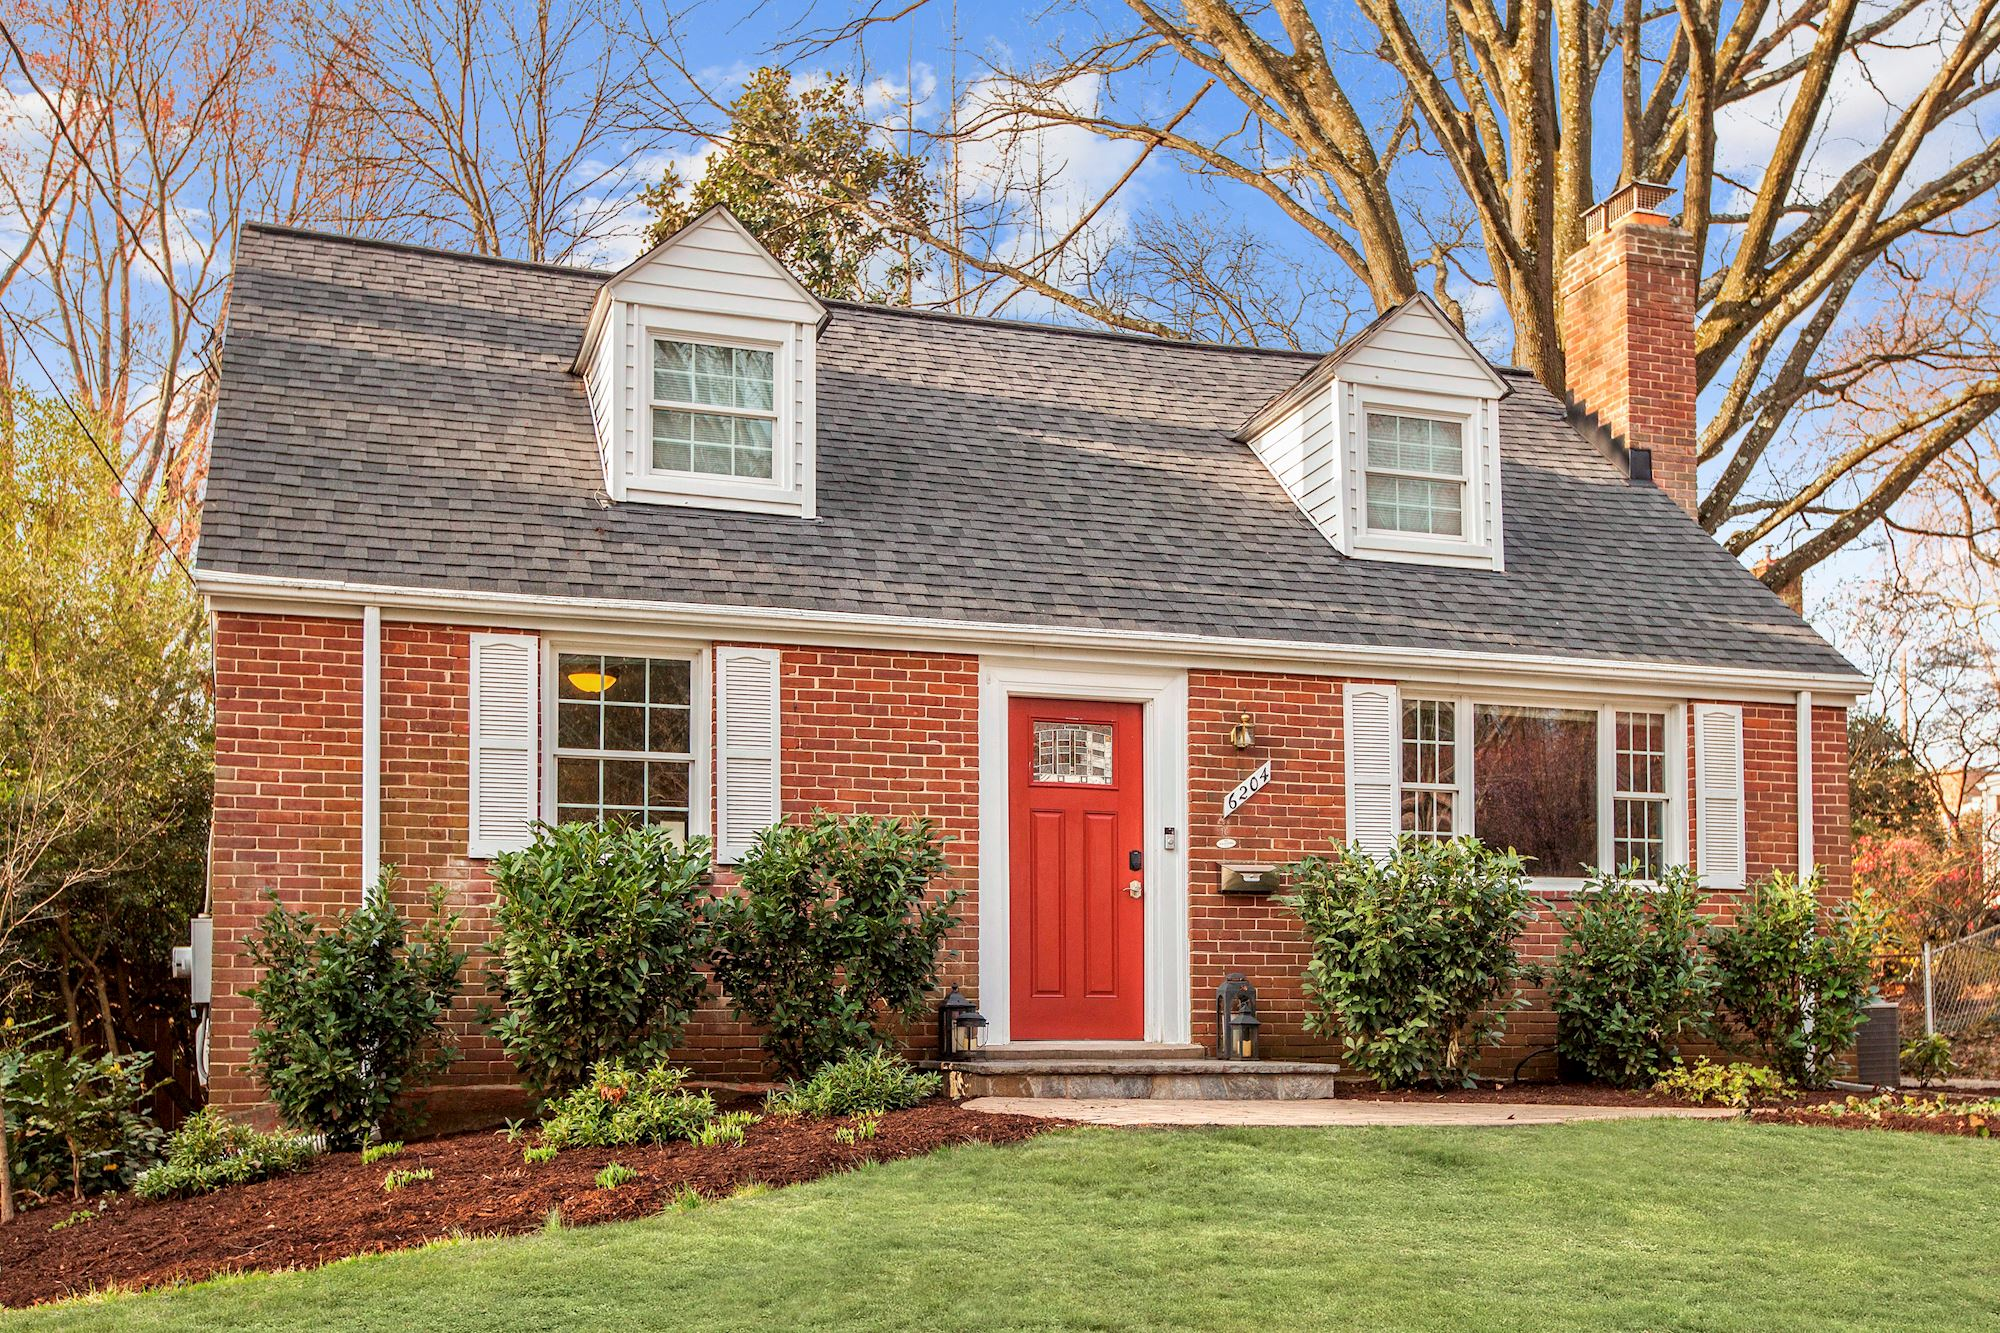 SOLD: Expanded and Renovated Single Family Home in Prime Bethesda,MD Location